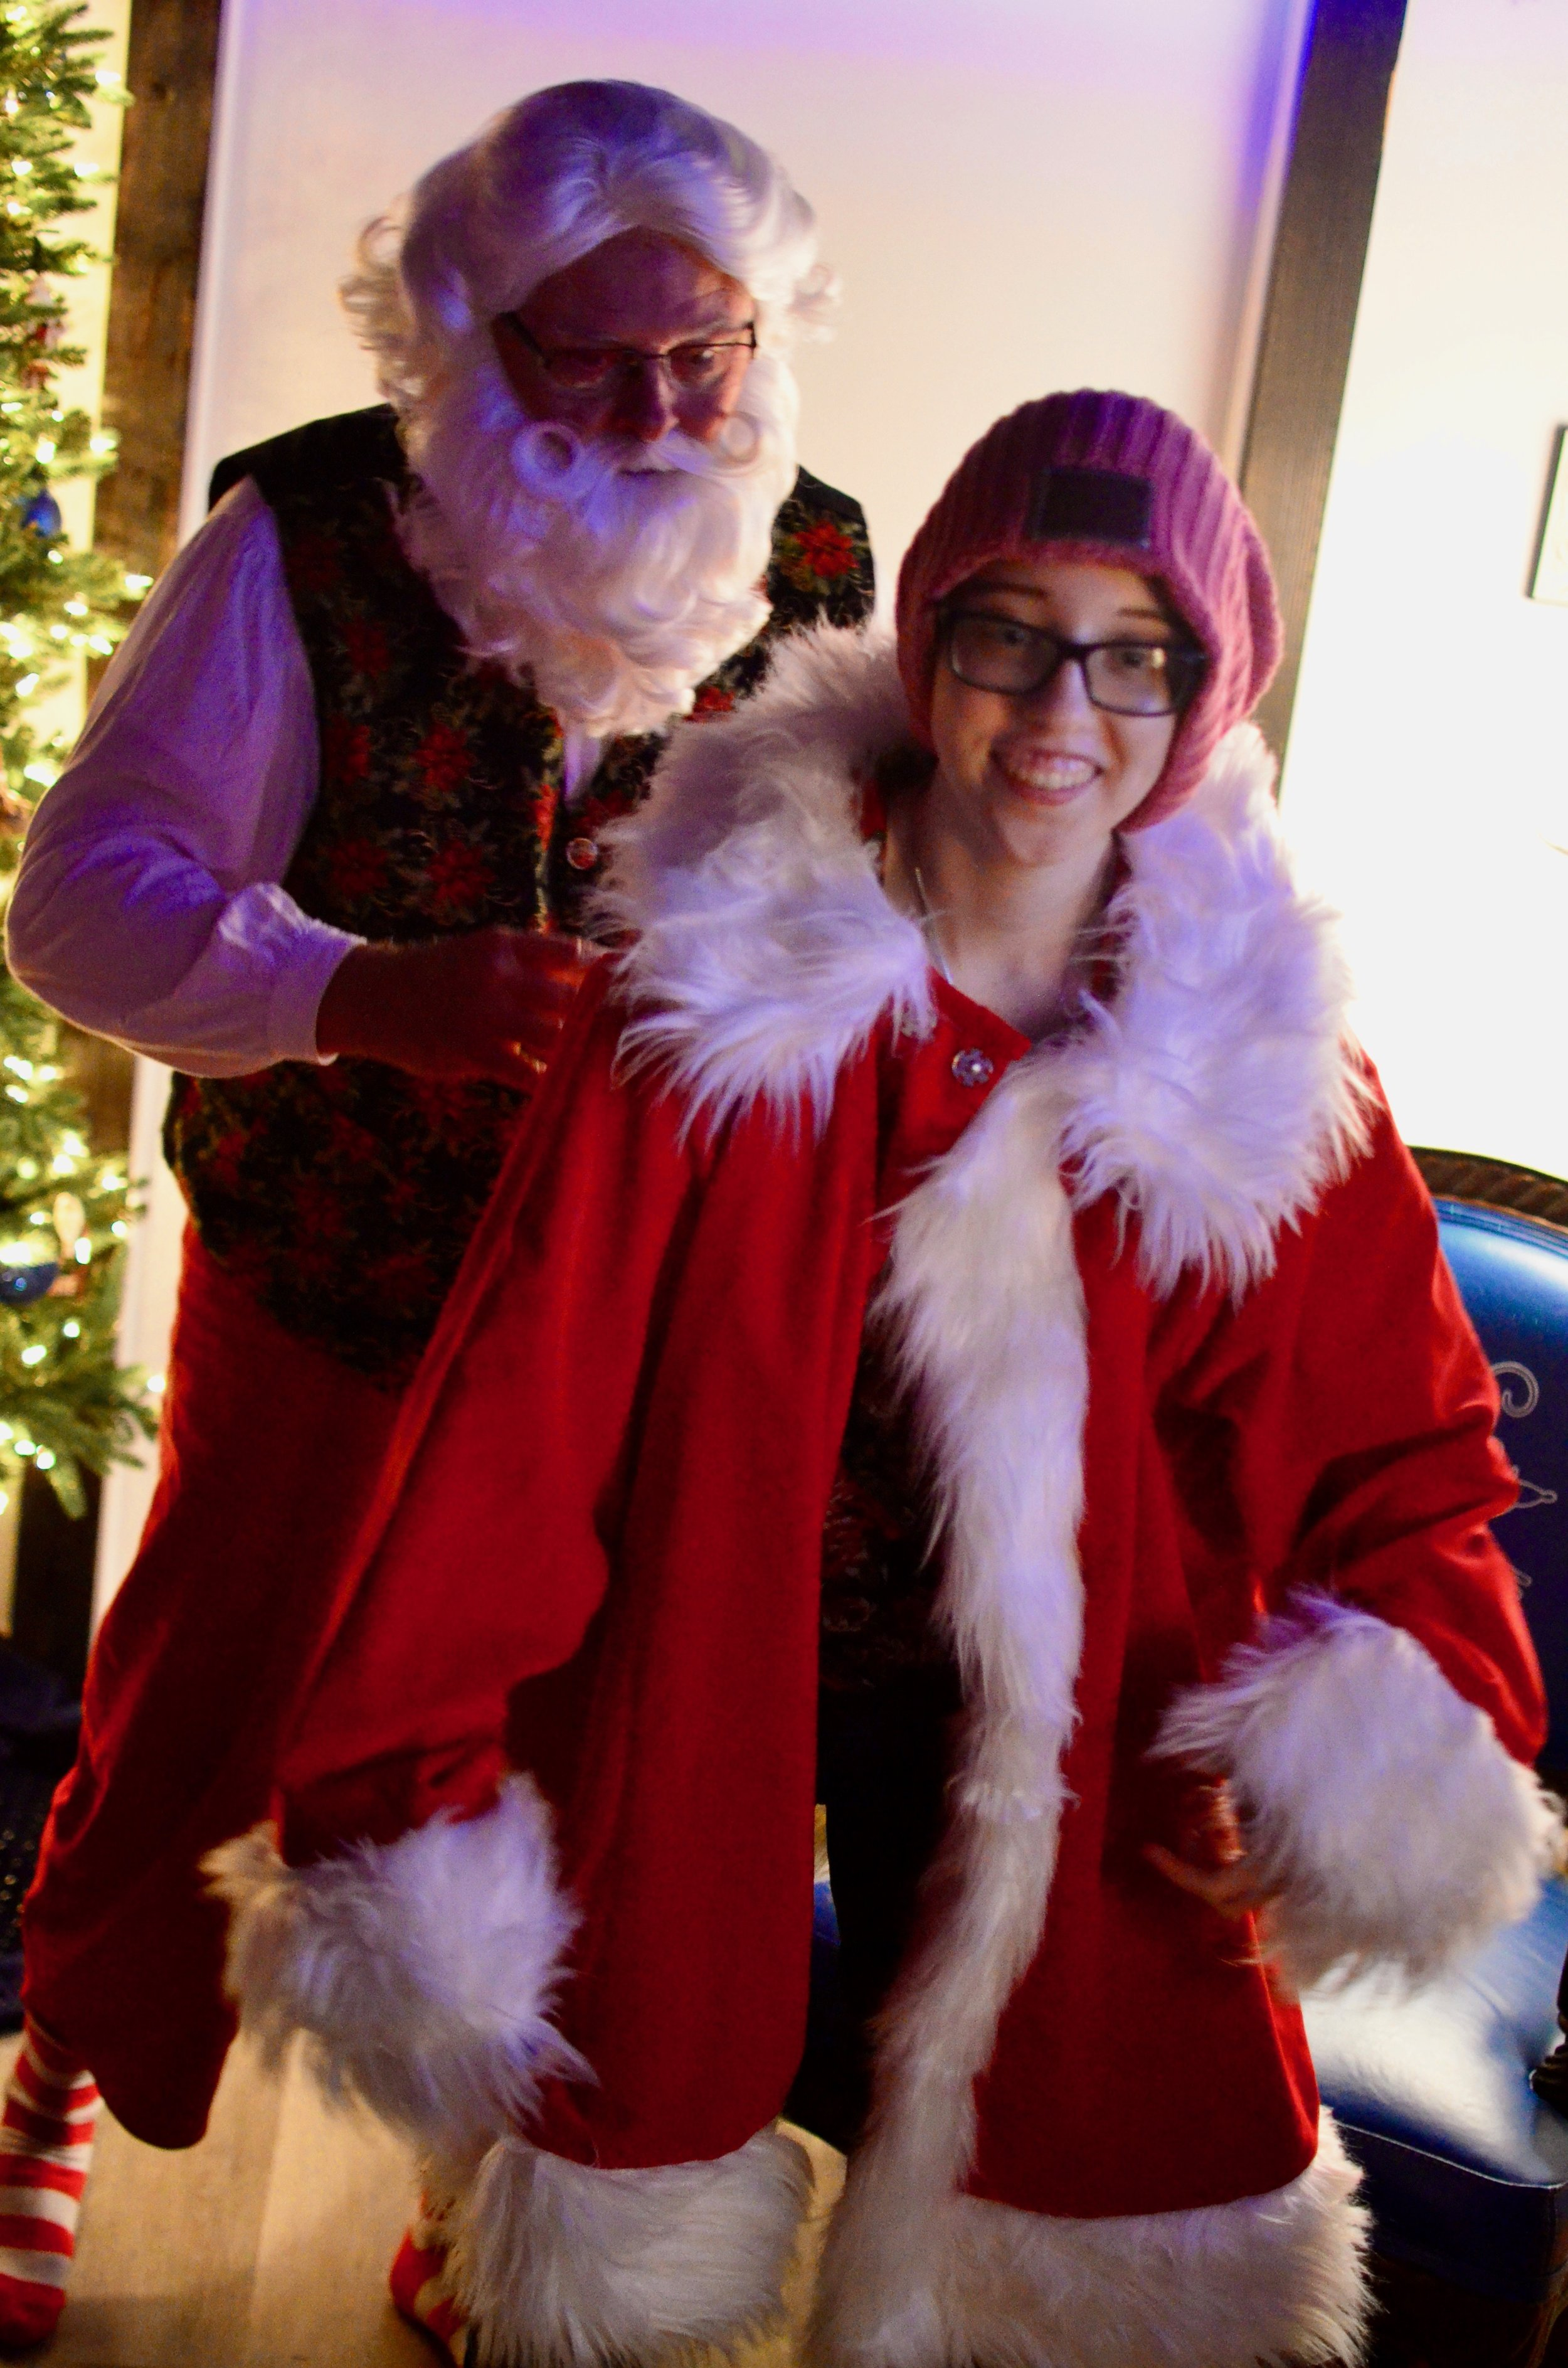 Being Santa - When you can't go to the mall for a picture with Santa because of a compromised immune system we have the perfect solution! A one-on-one, controlled environment where you can even try on the big man's boots and coat!